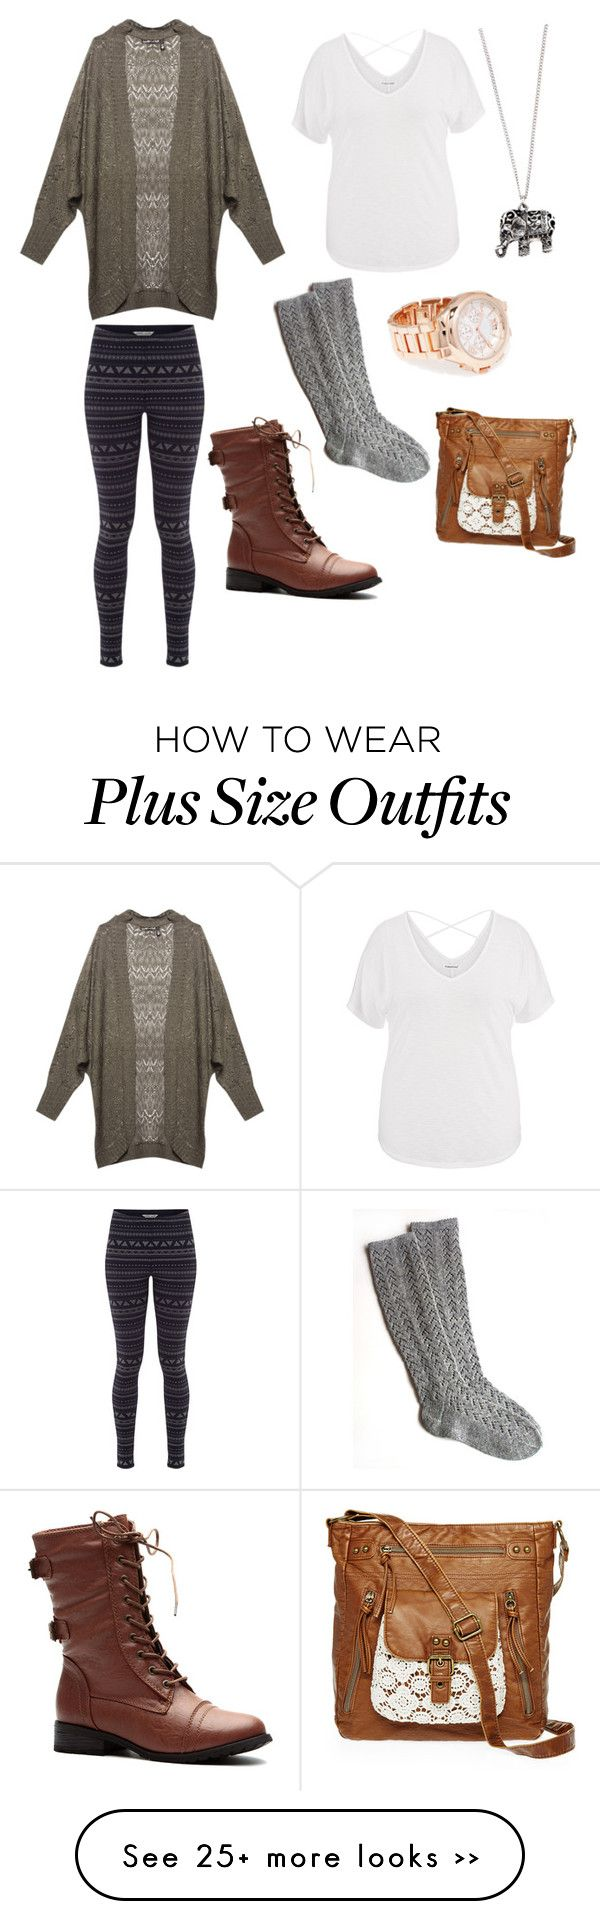 """""""Cozy fall day. (Plus size)"""" by nadia-shinkewicz on Polyvore featuring Wet Seal, maurices, White Stuff, Accessorize, Forever 21, T-shirt & Jeans, comfy, Leggings and plussize"""